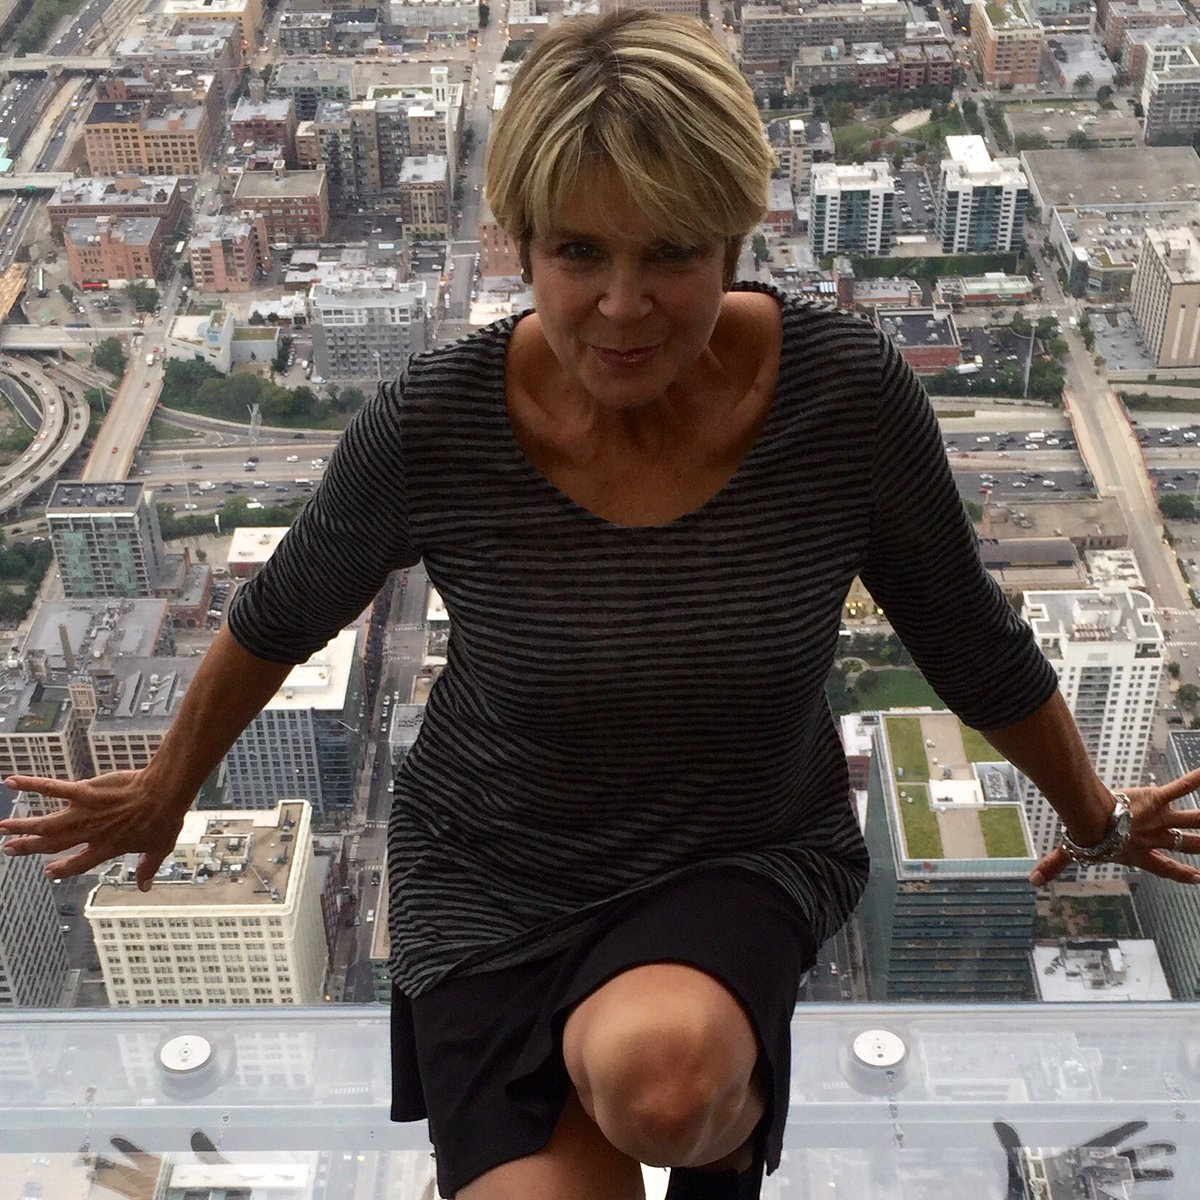 Yikes at the Sears oops Willis Tower, 103 stories up. #Chicago icdA0Ryyja